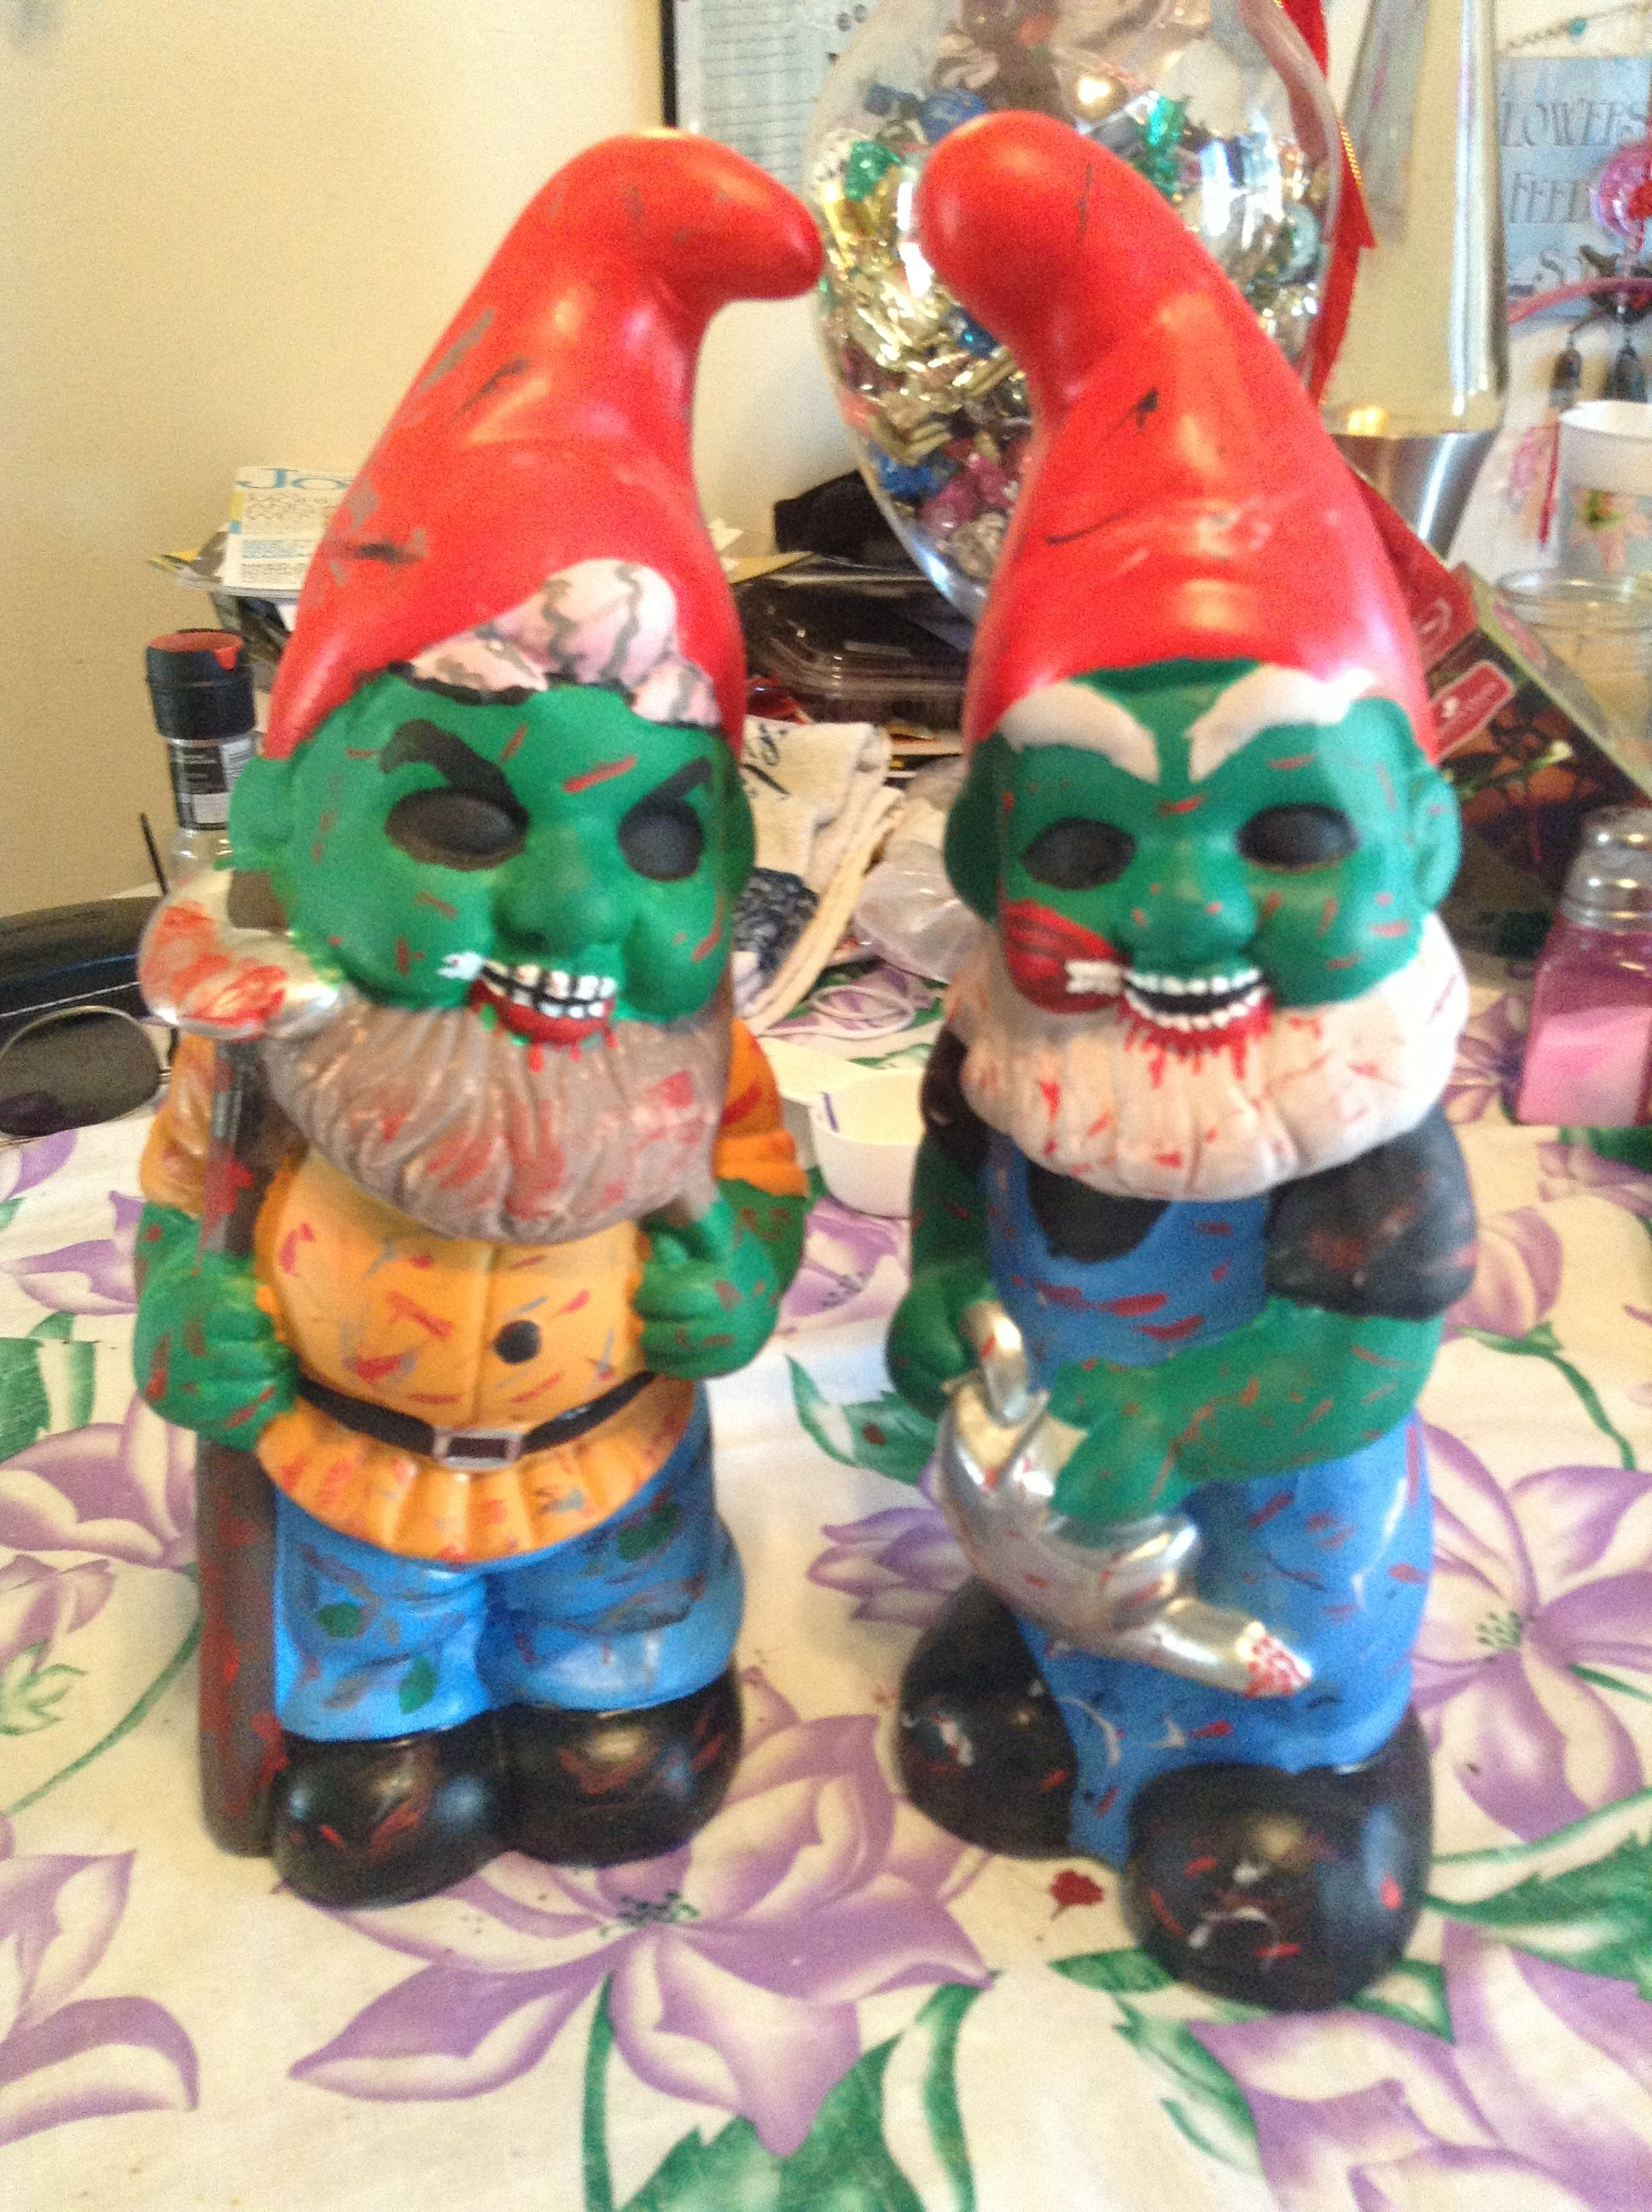 My zombie lawn gnomes I made!